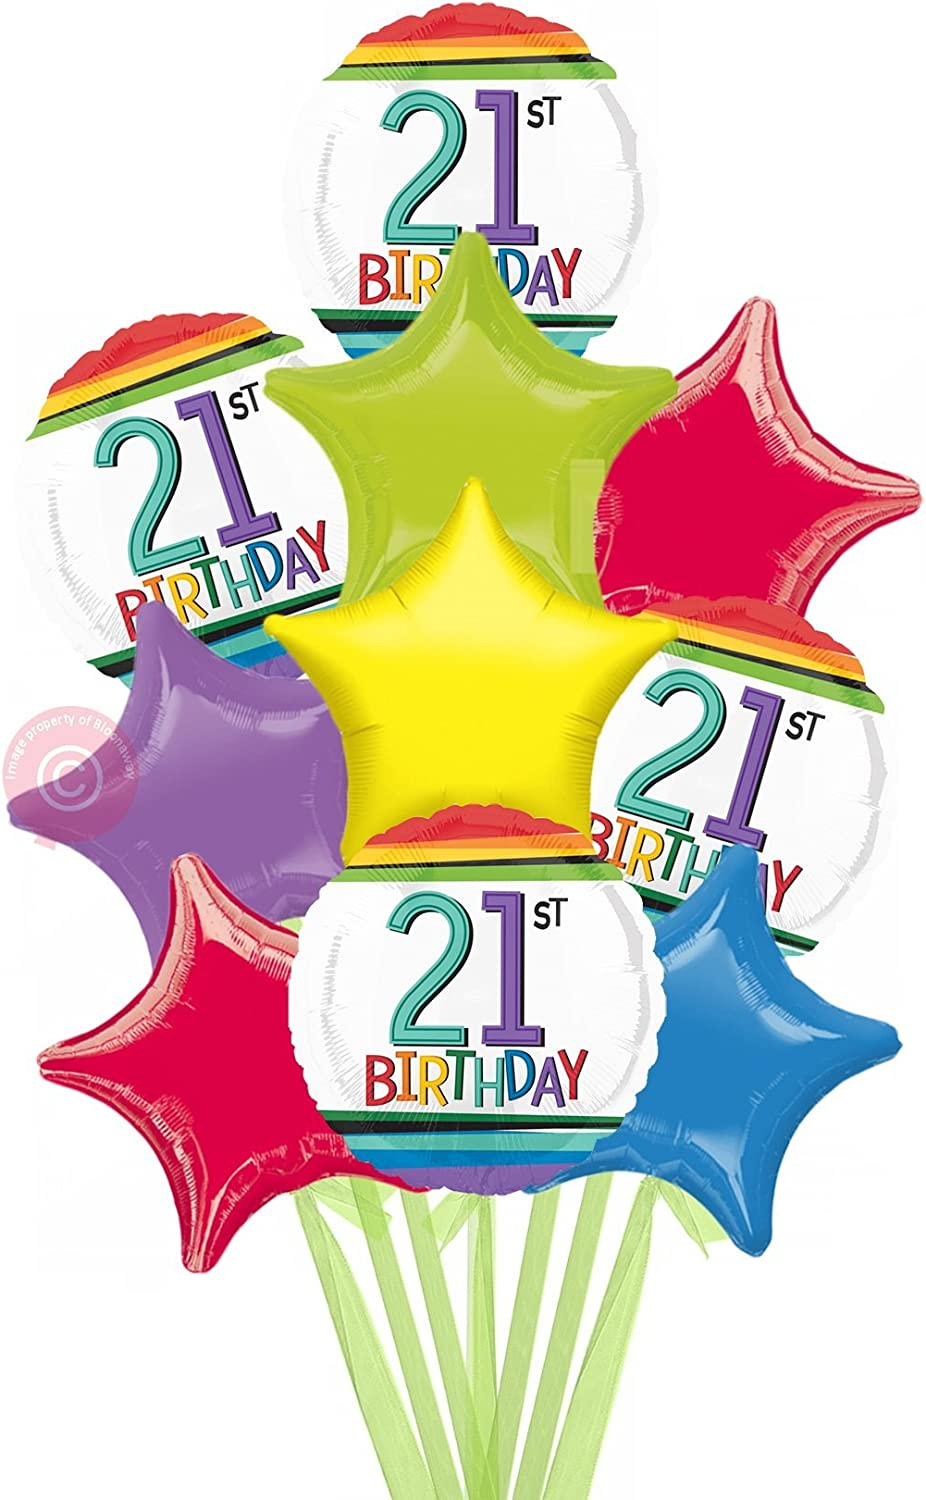 Num 21 Rainbow 21st Birthday  Inflated Birthday Helium Balloon Delivered in a Box  Biggest Bouquet  10 Balloons  Bloonaway